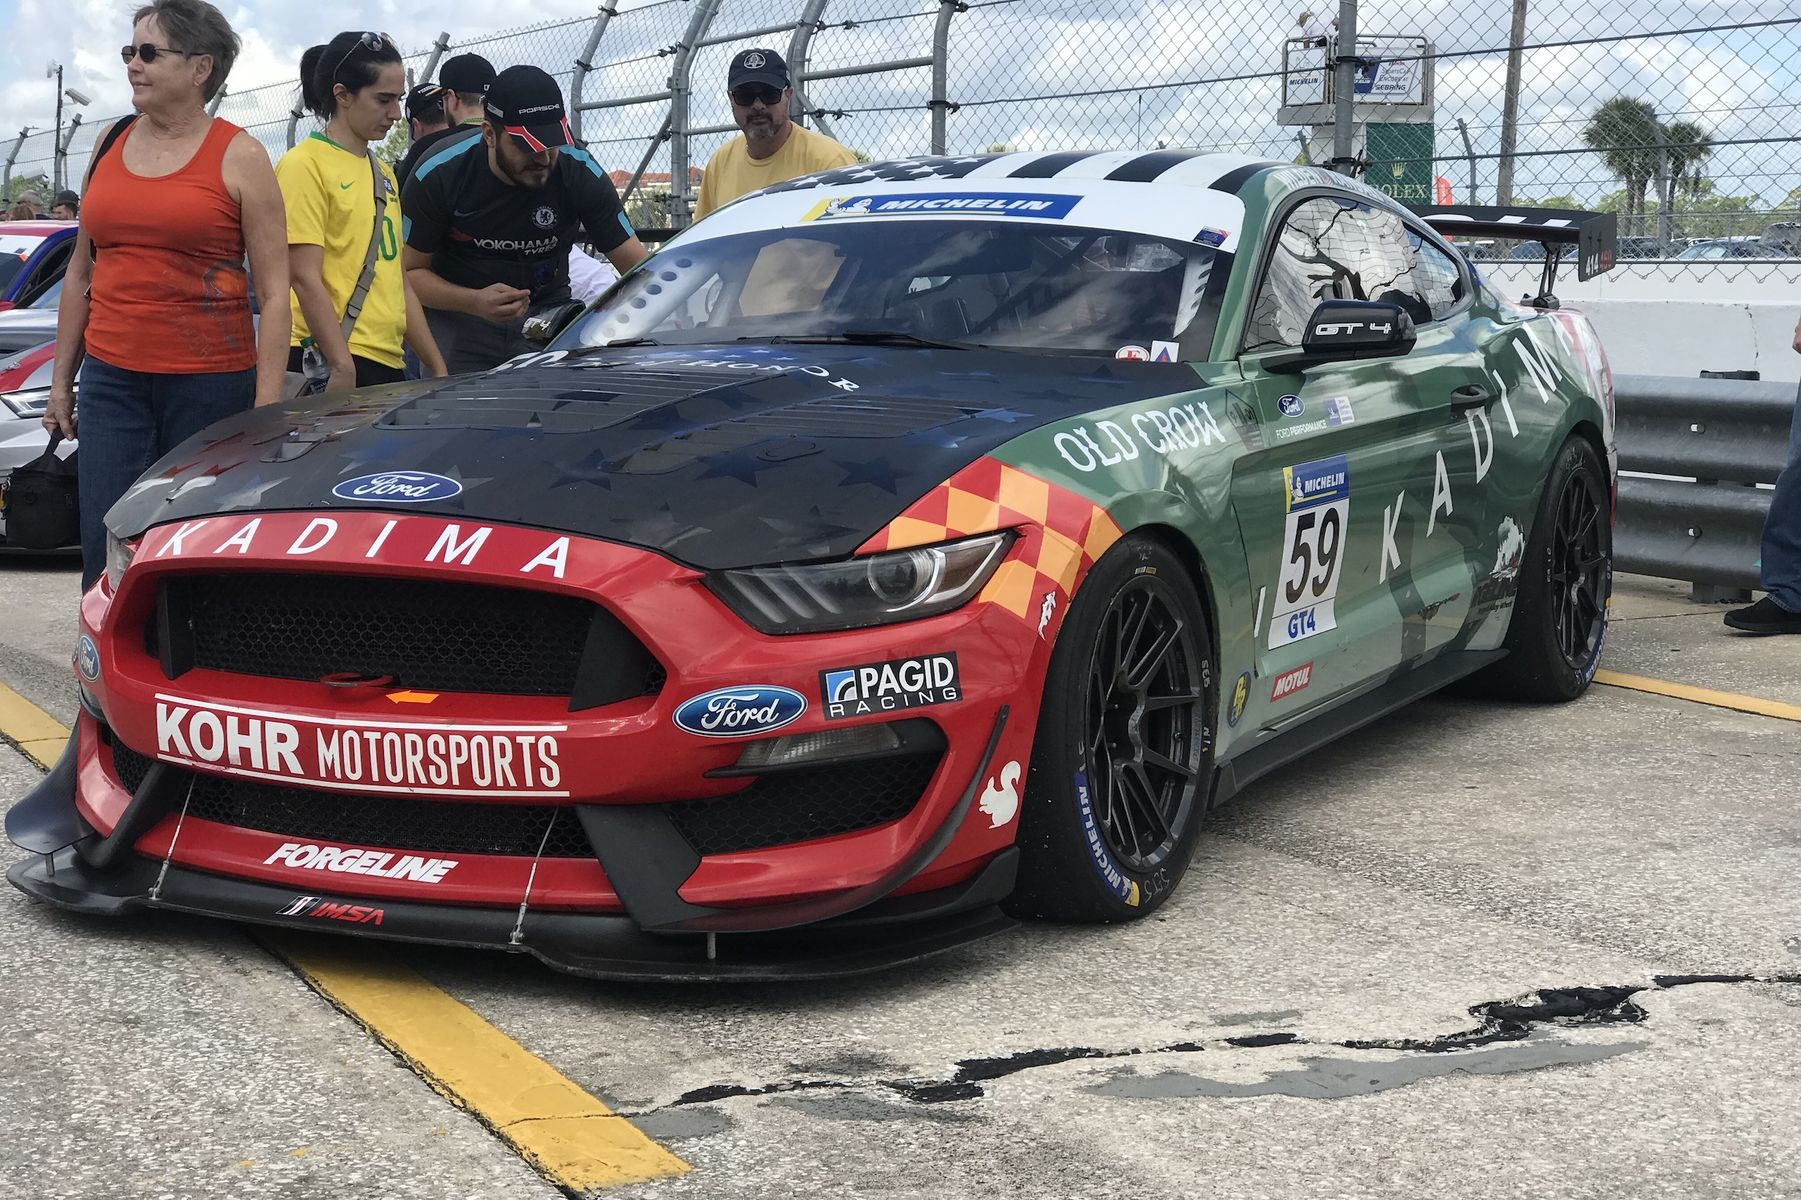 2018 Ford Mustang | KohR Motorsports Wins the IMSA Michelin Encore at Sebring on Forgeline One Piece Forged Monoblock GS1R Wheels